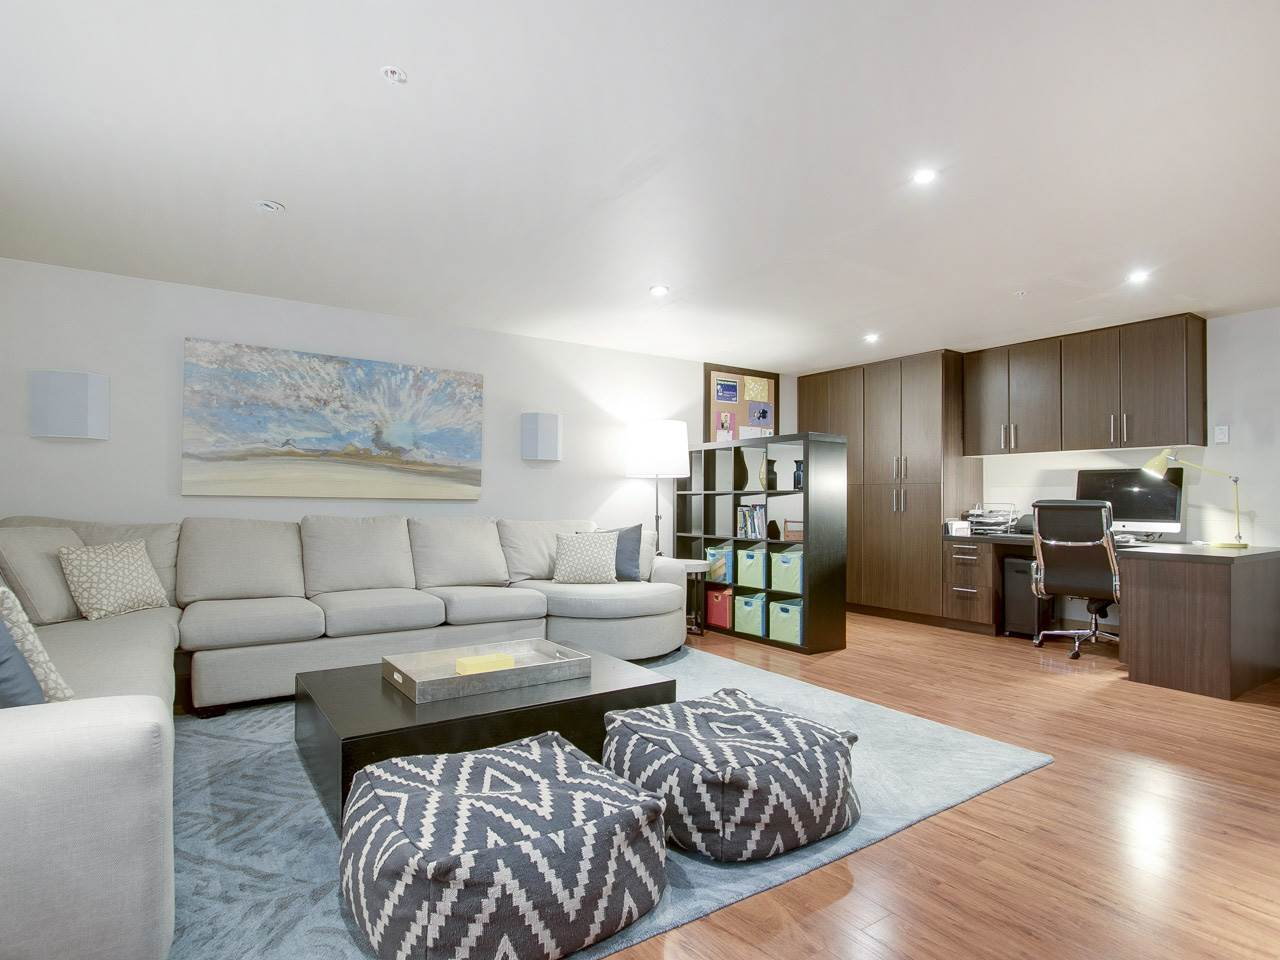 Photo 19: 113 6018 IONA DRIVE in Vancouver: University VW Townhouse for sale (Vancouver West)  : MLS® # R2146501